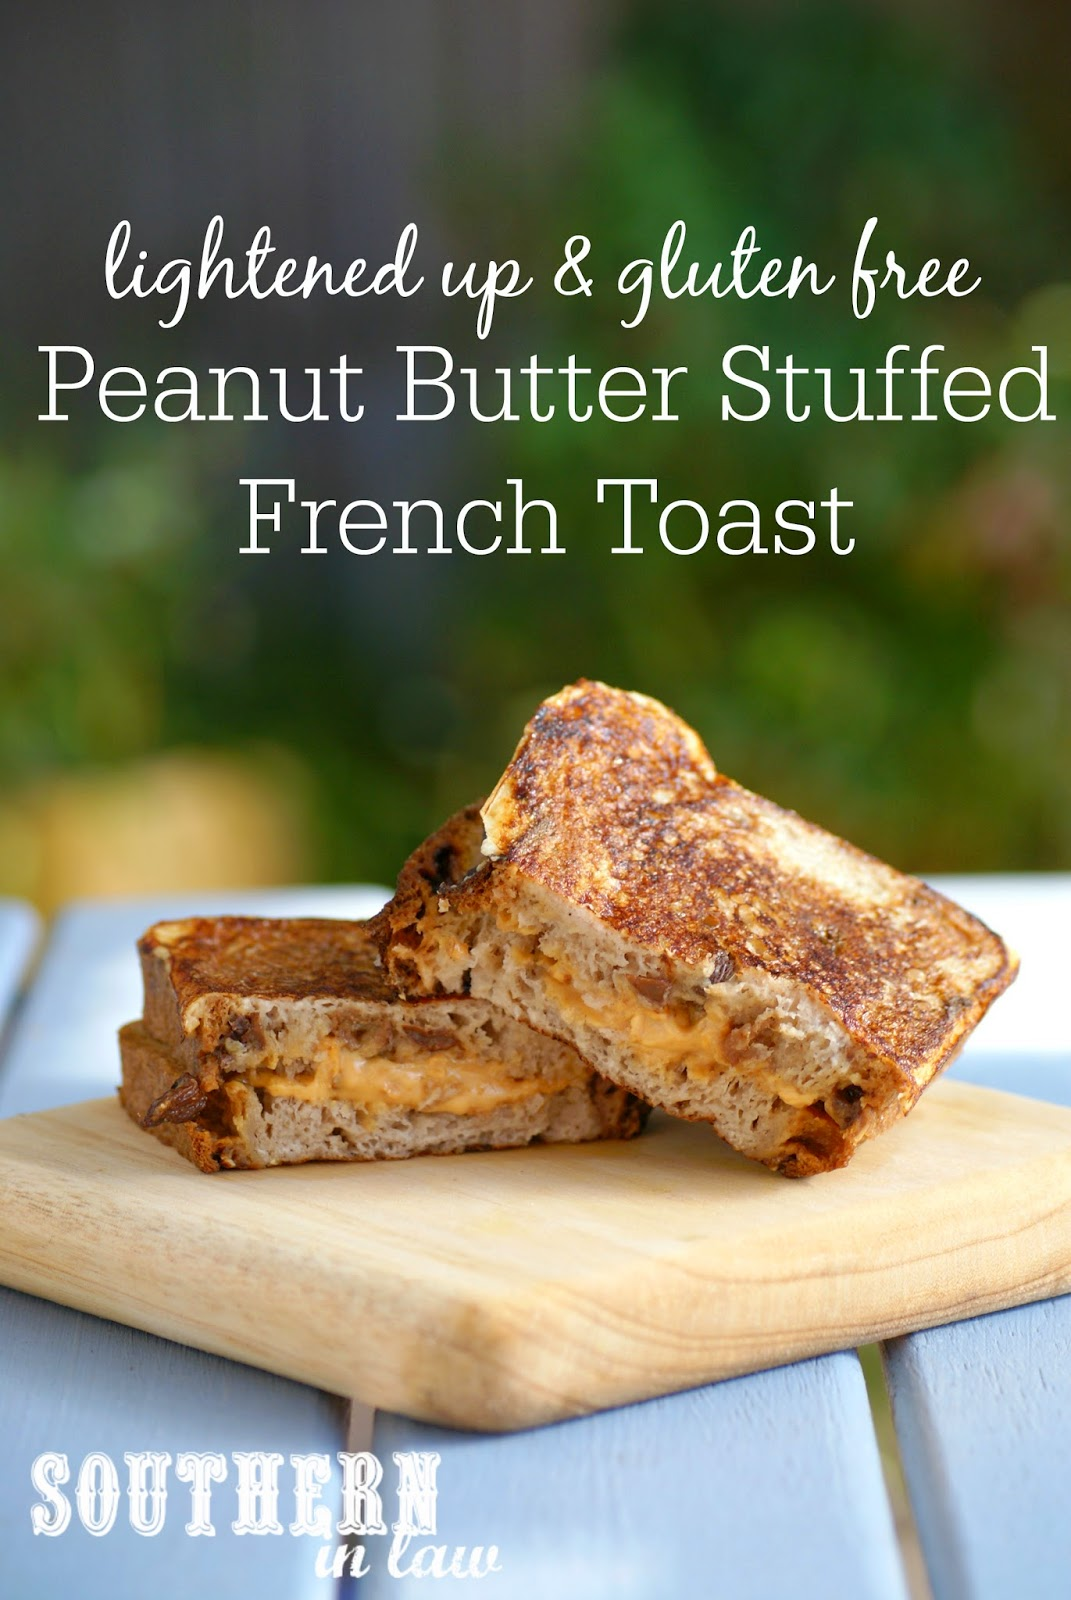 Healthy Peanut Butter Stuffed French Toast - low fat, gluten free, sugar free, clean eating friendly